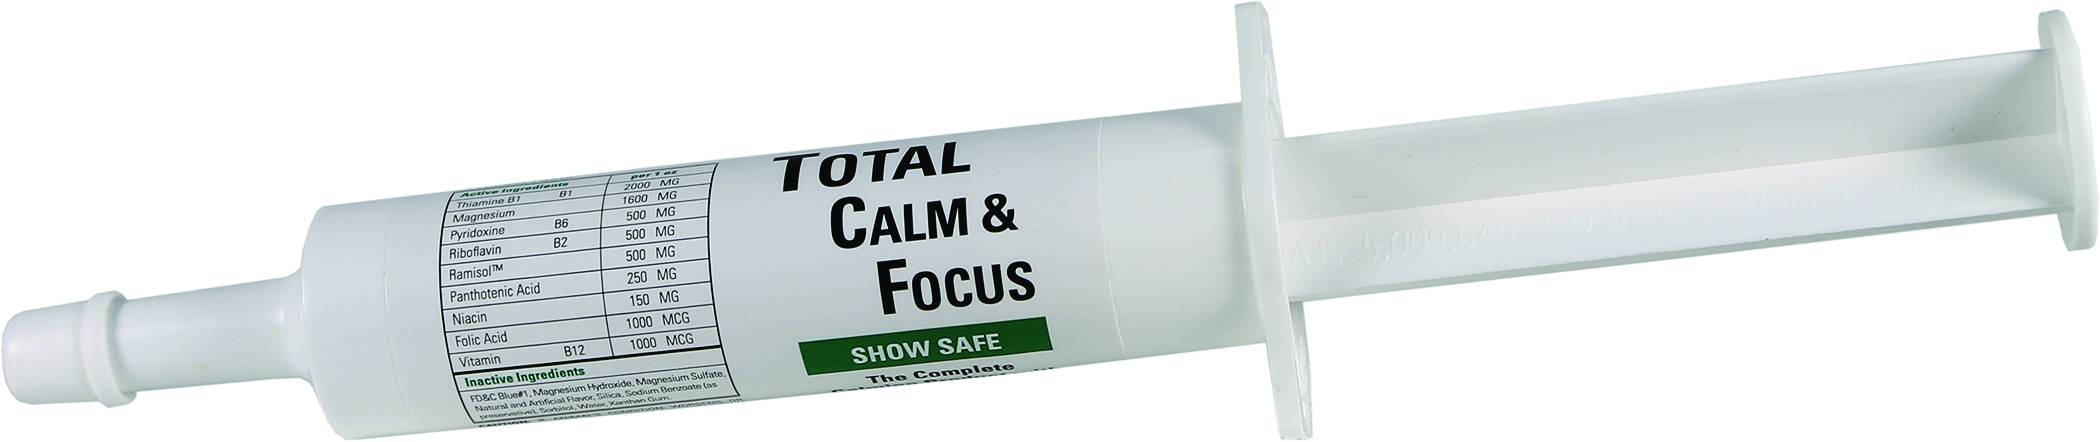 Total Calm & Focus Show Safe Syringe